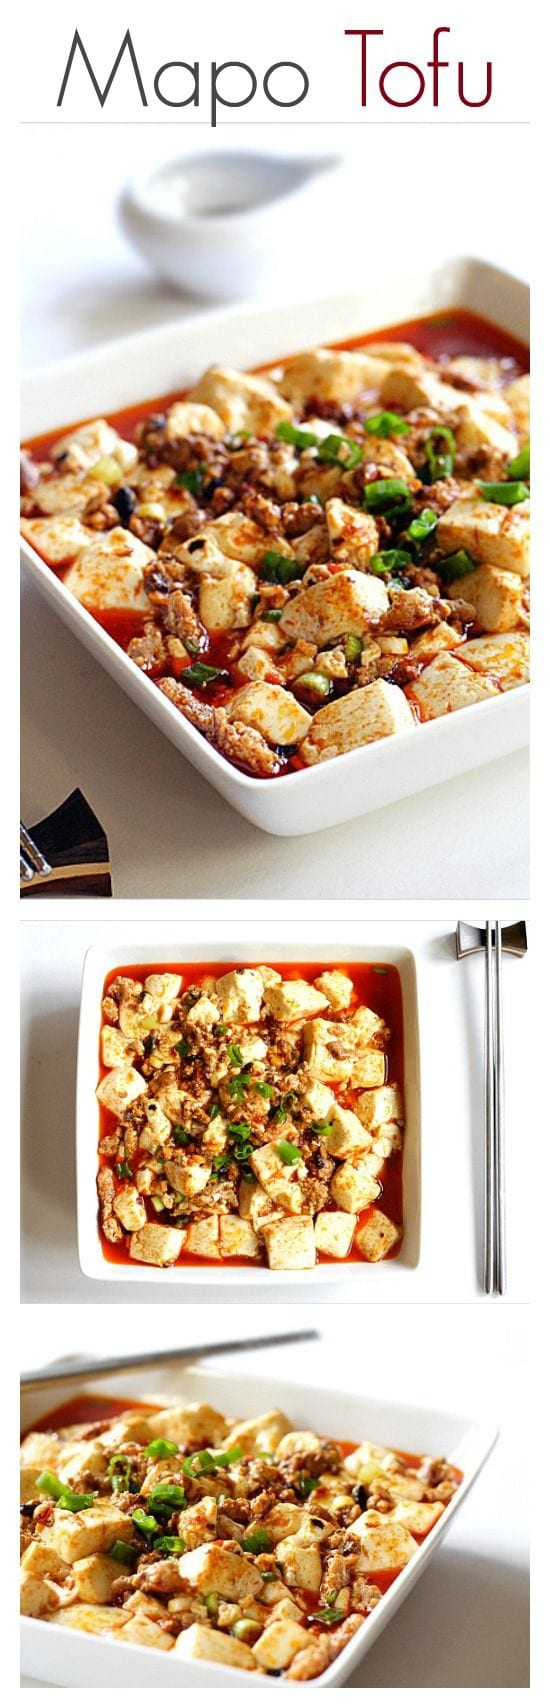 Mapo Tofu - the best Chinese tofu dish. Learn how to make it with this super easy and delicious recipe | rasamalaysia.com